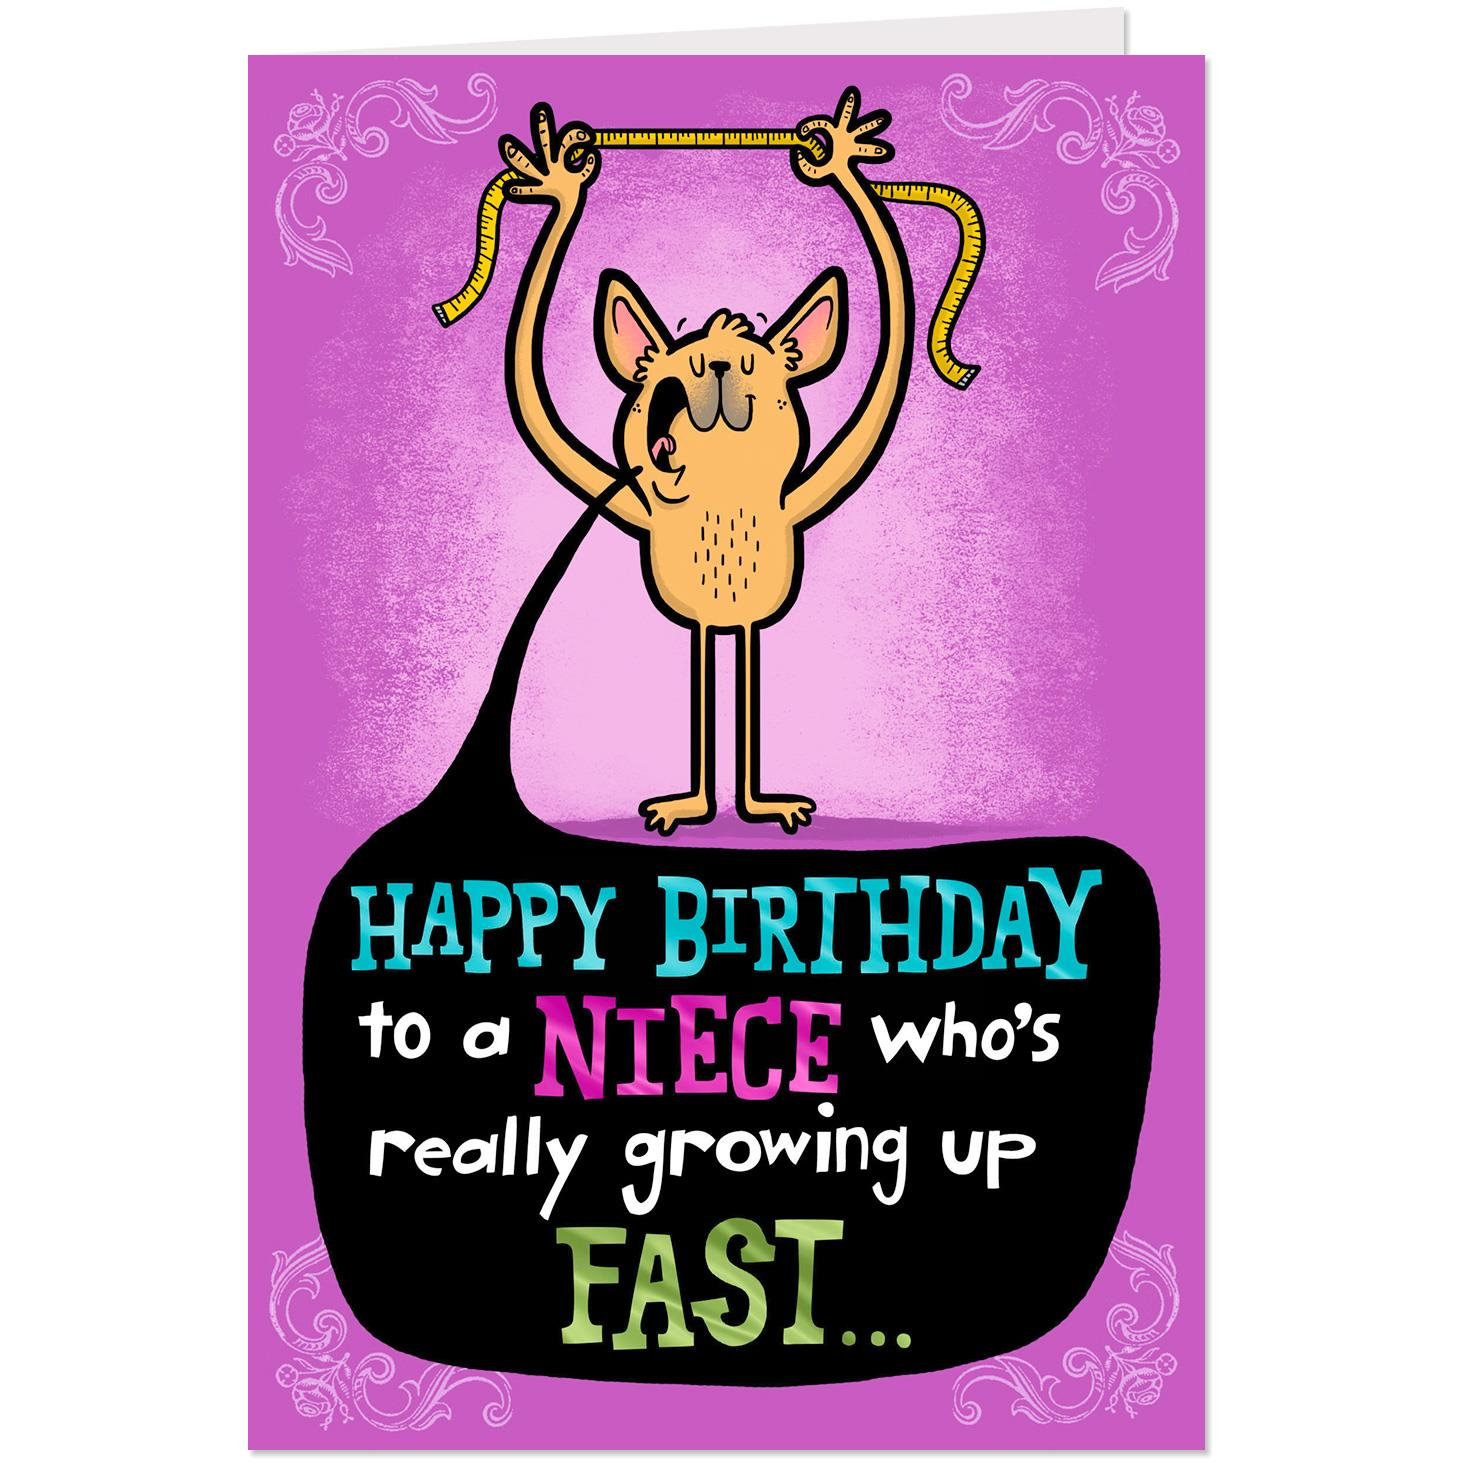 You're Growing Up Fast Funny Birthday Card For Niece